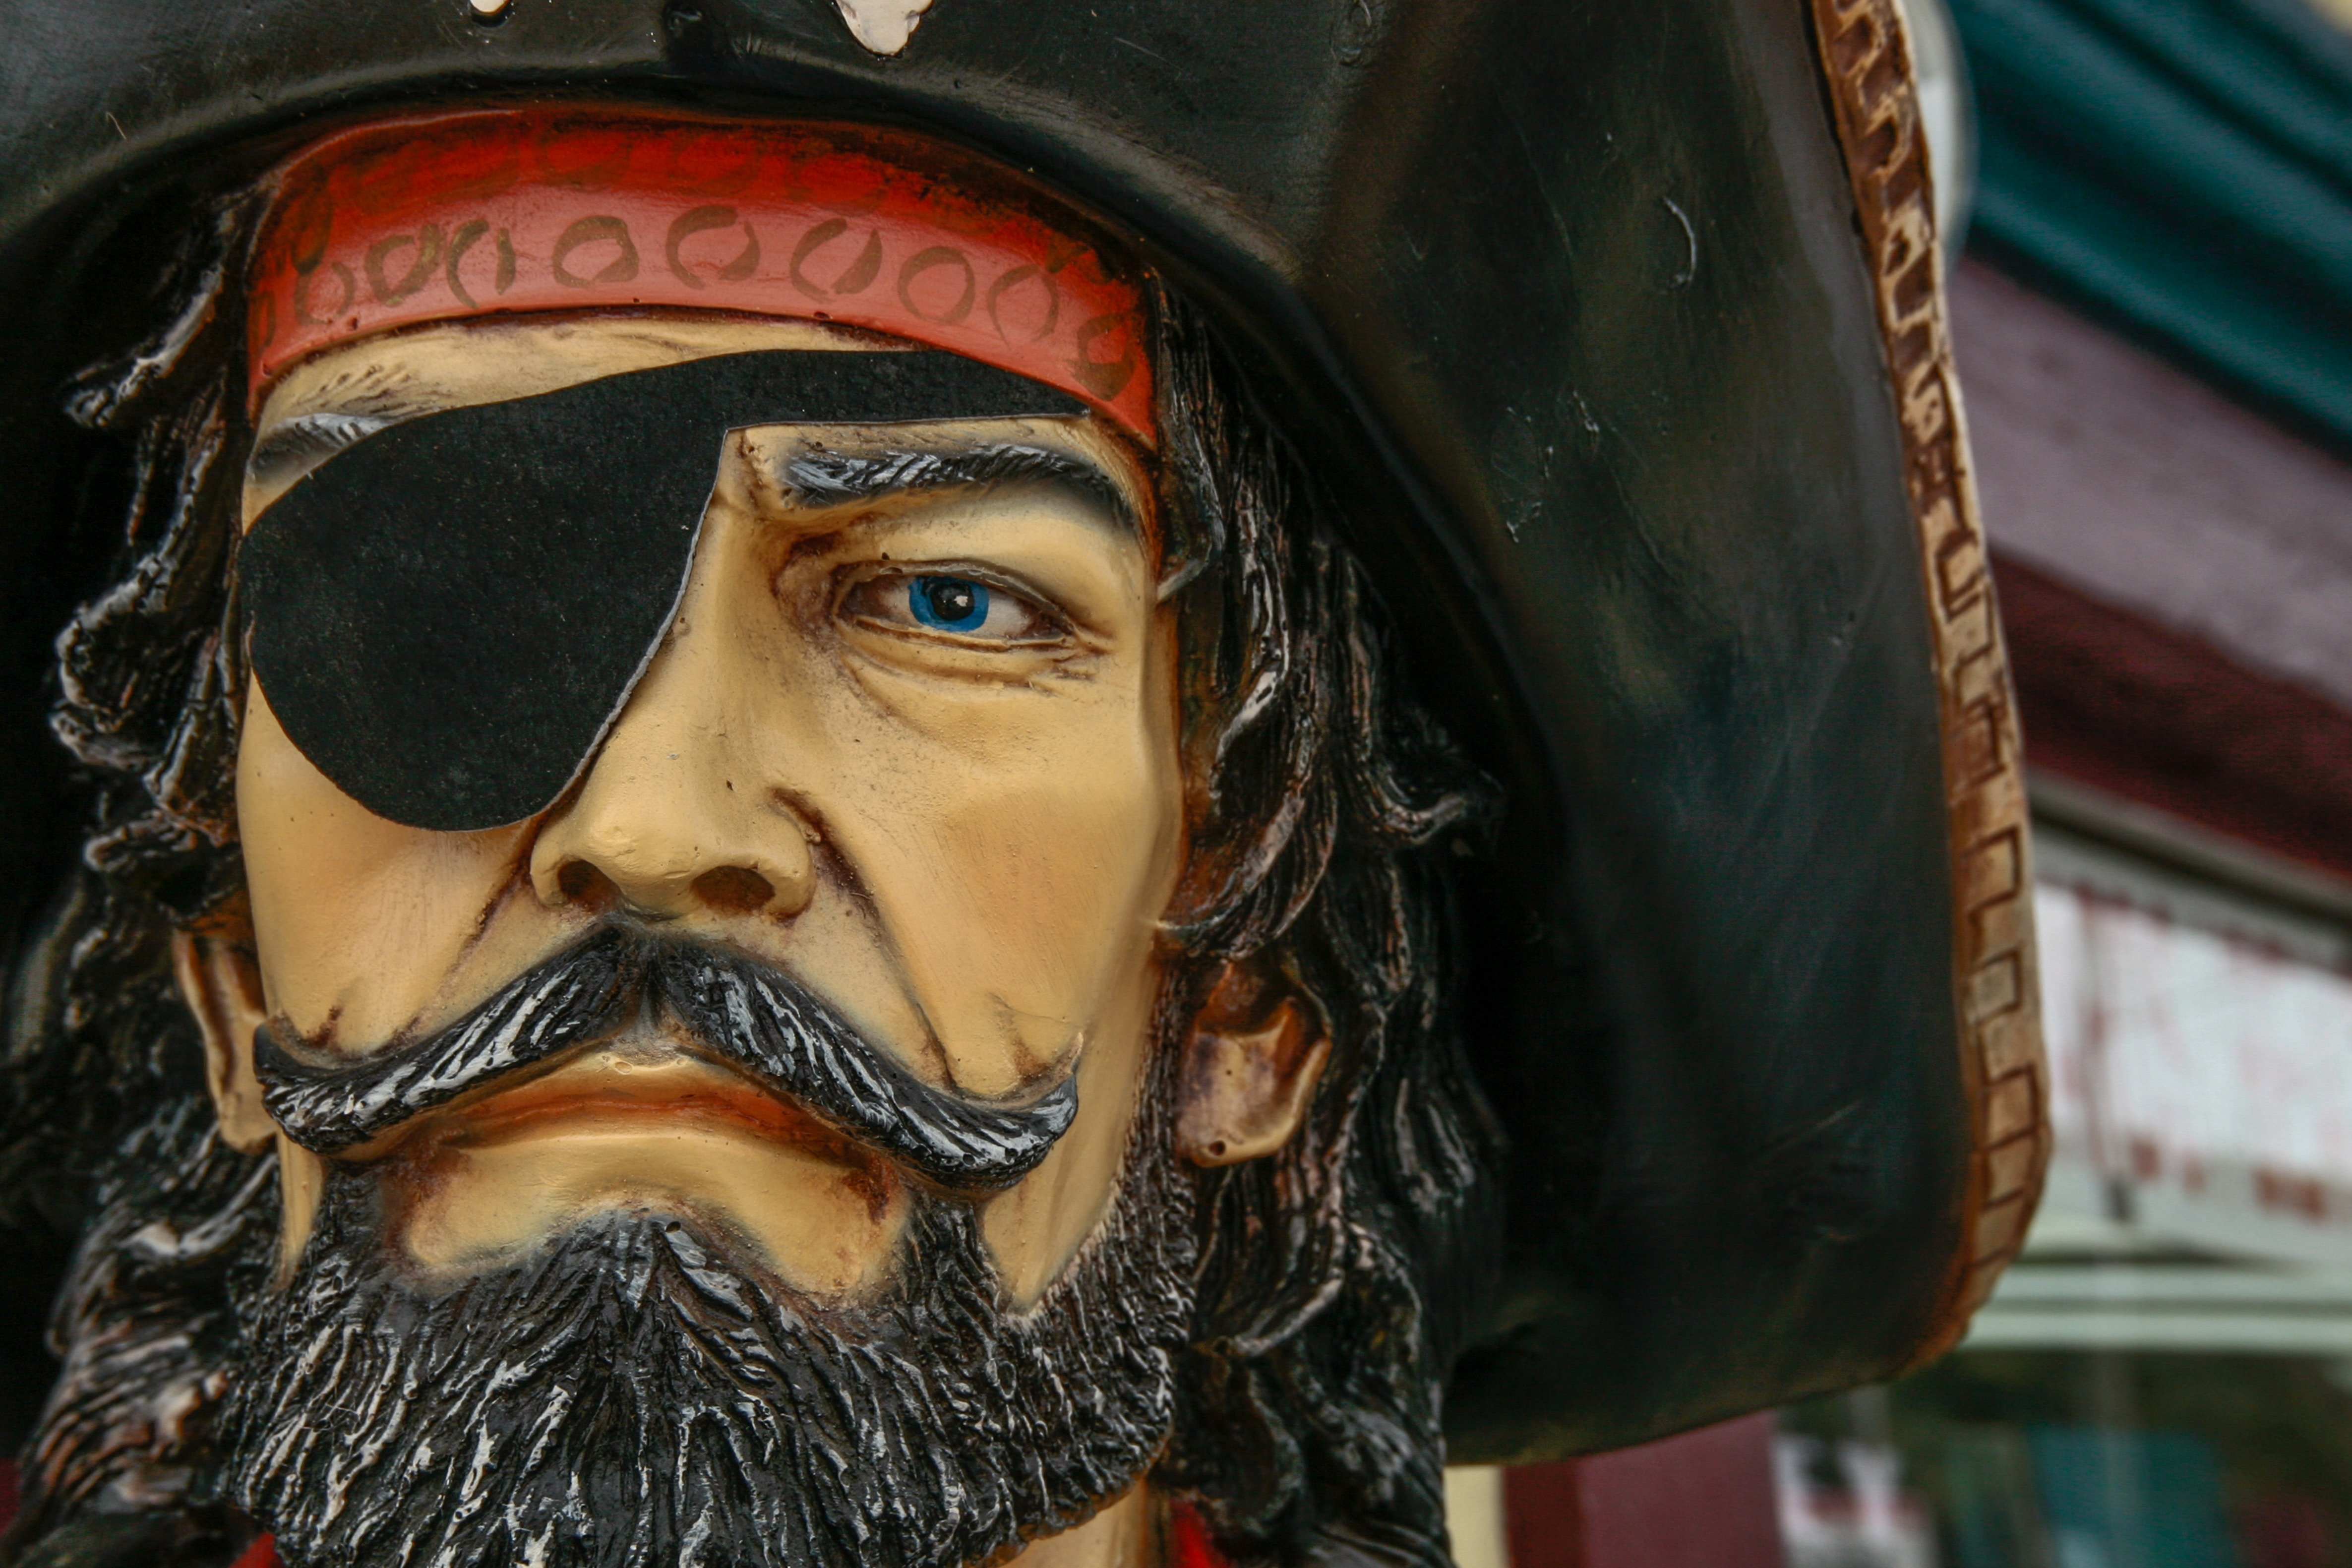 A pirate statue with an eye-patch| Source: Unsplash.com